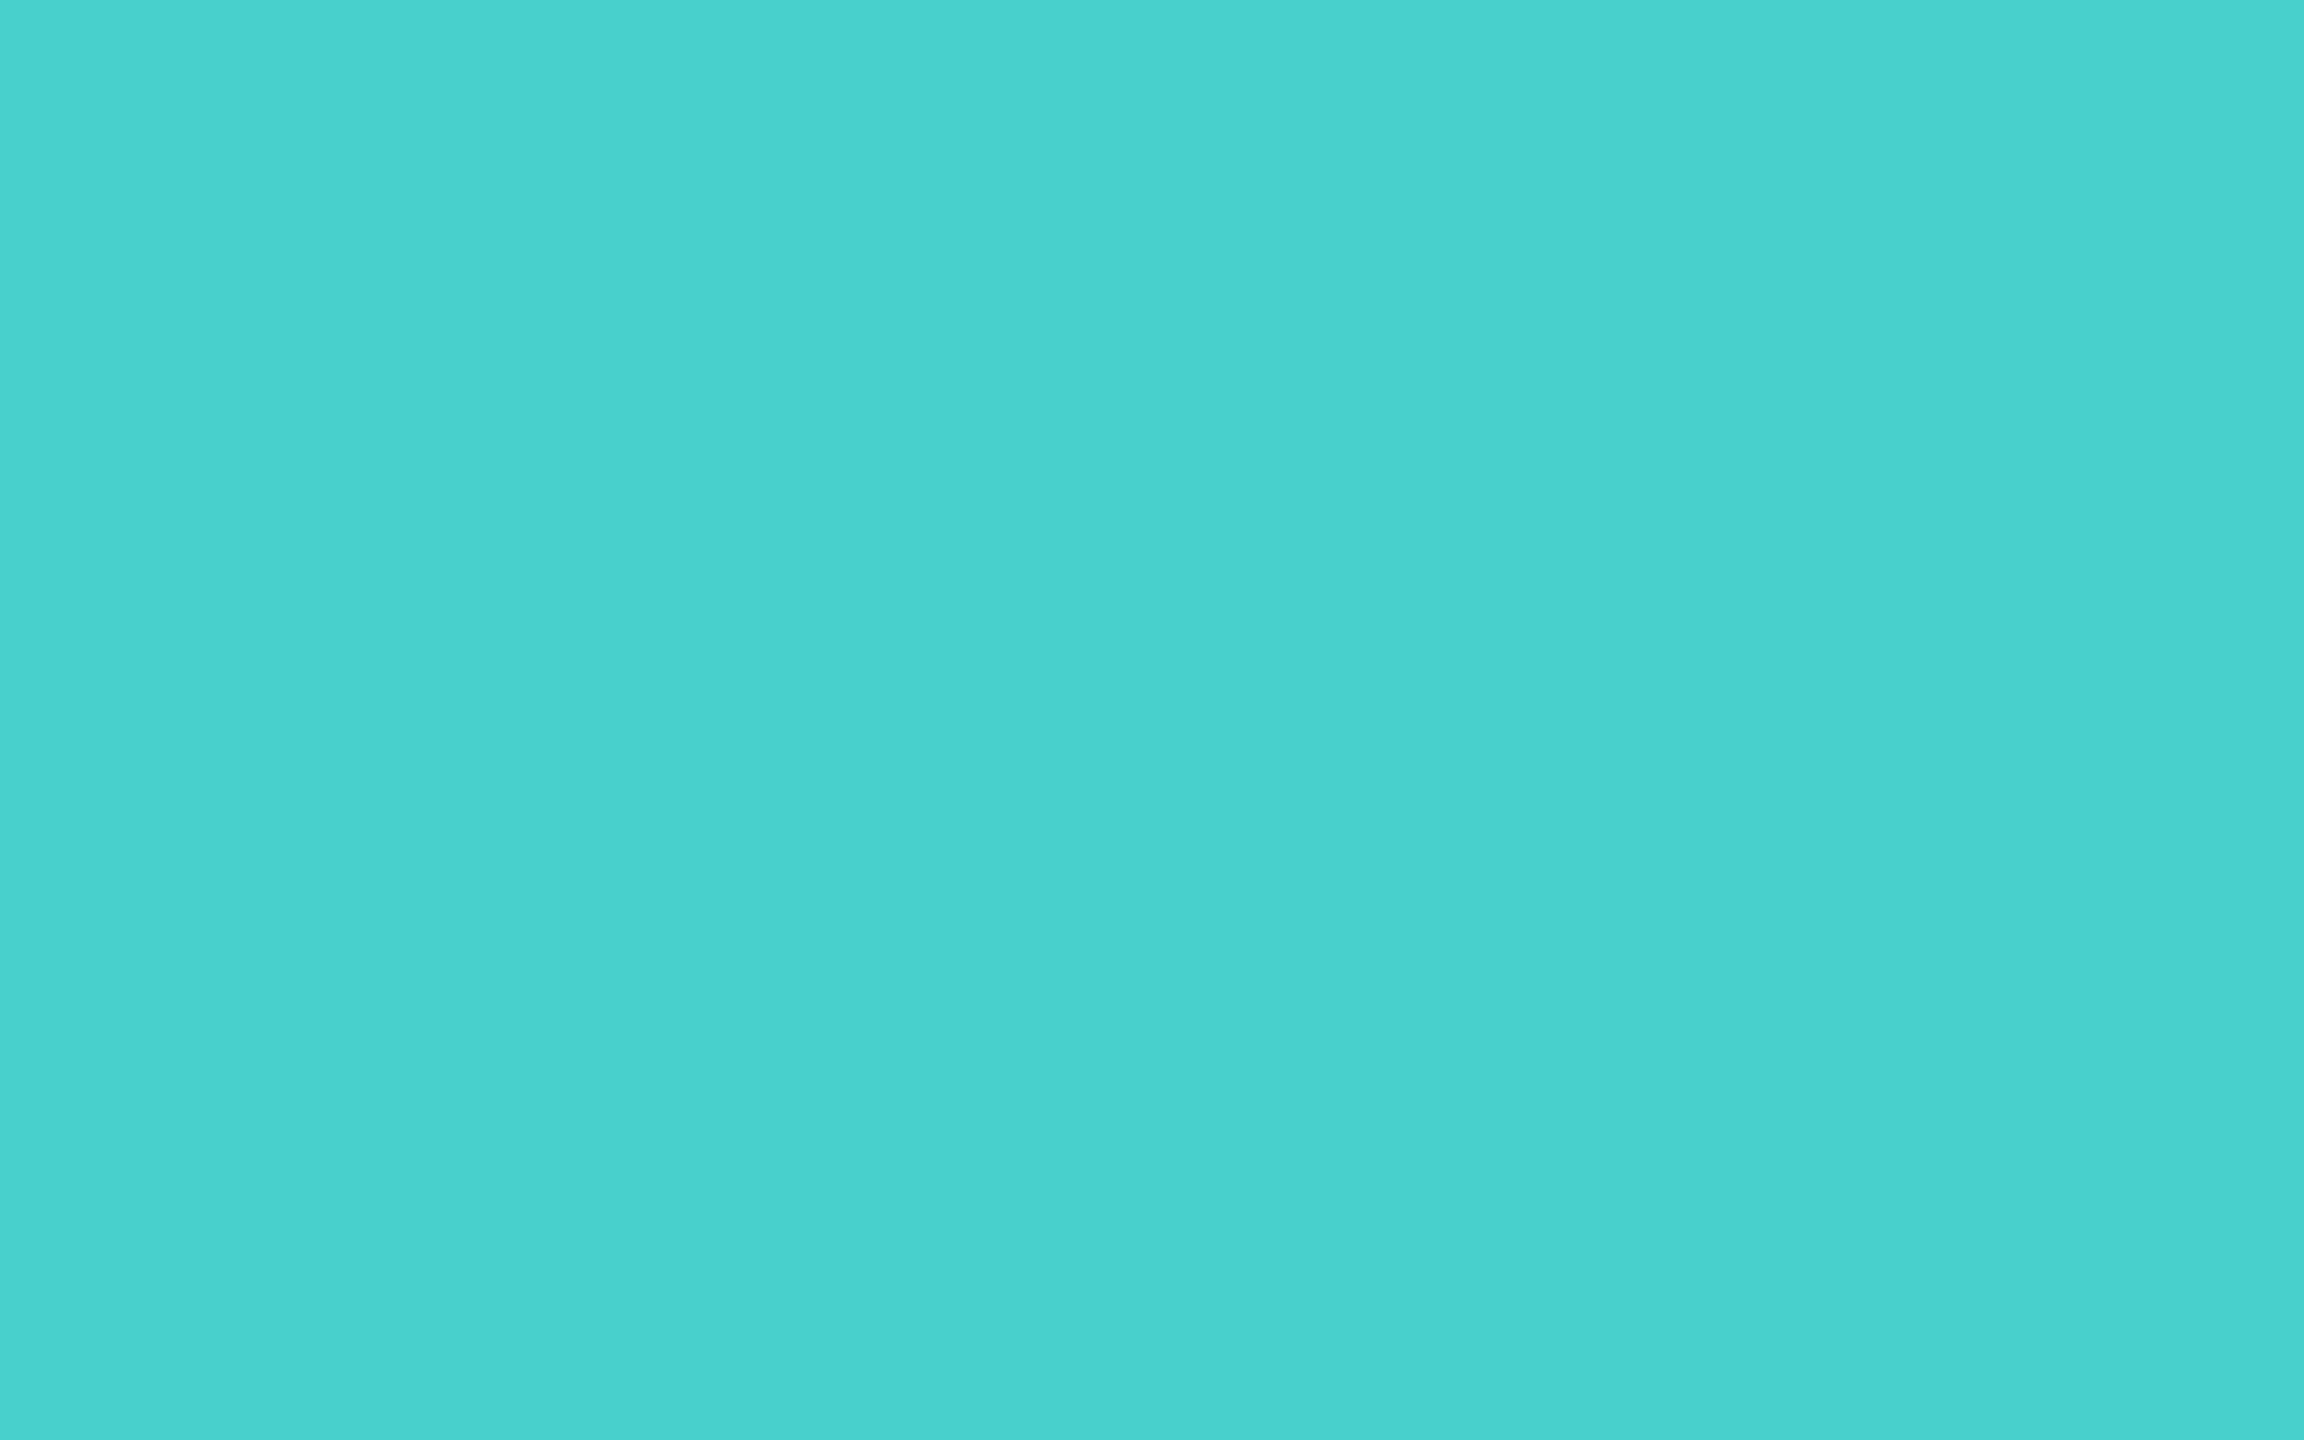 2304x1440 Medium Turquoise Solid Color Background